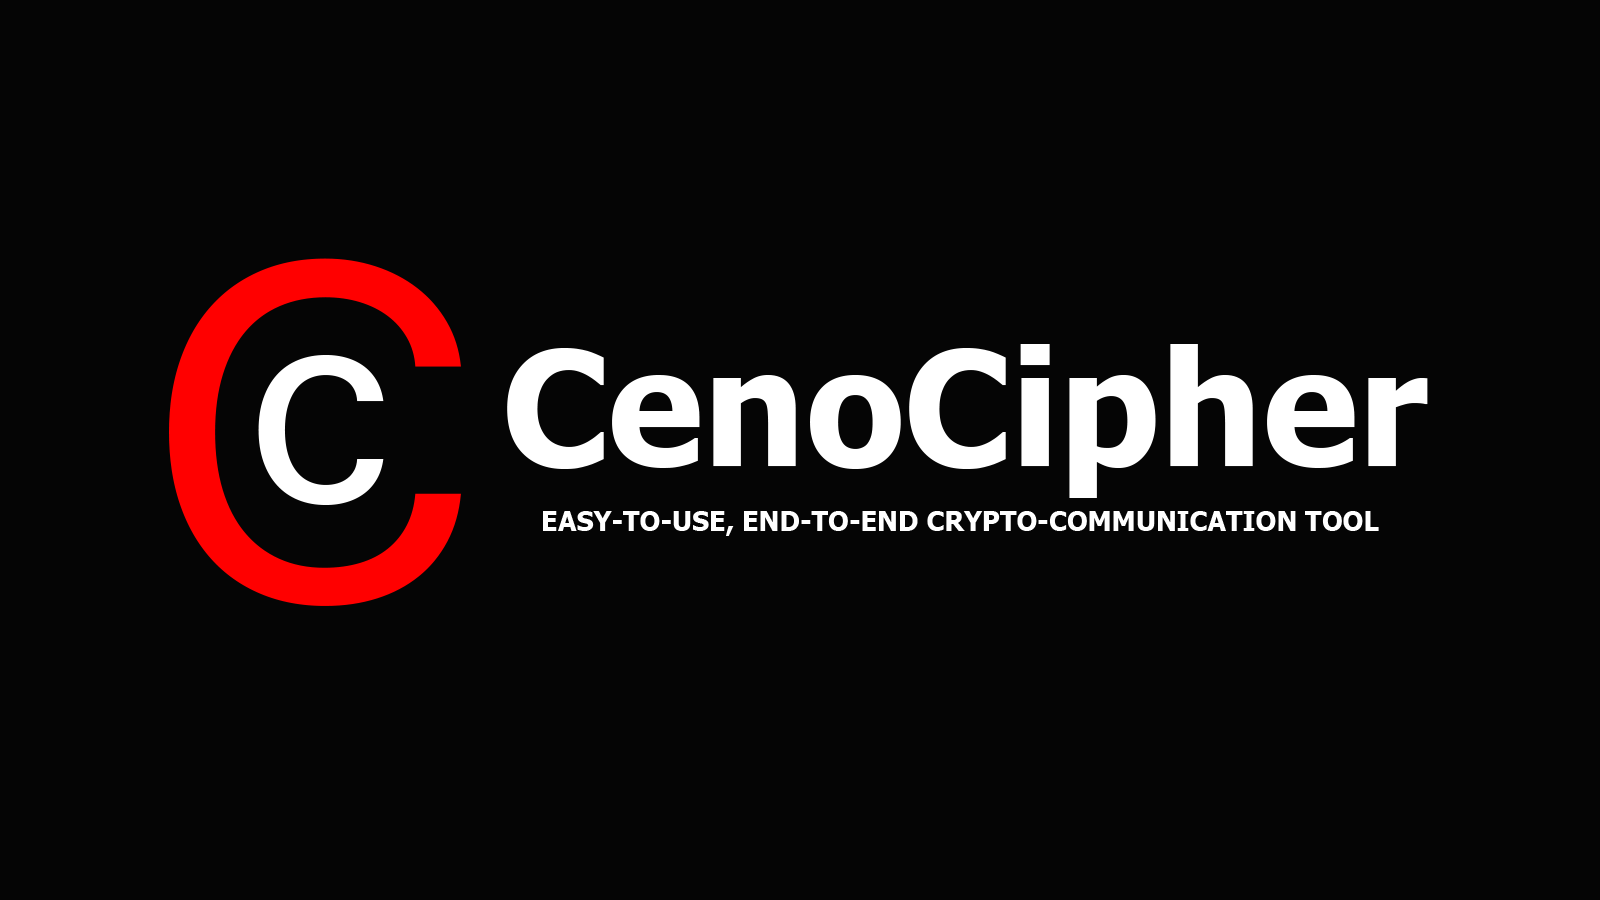 CenoCipher - Easy-to-Use, End-to-End Crypto-Communication Tool